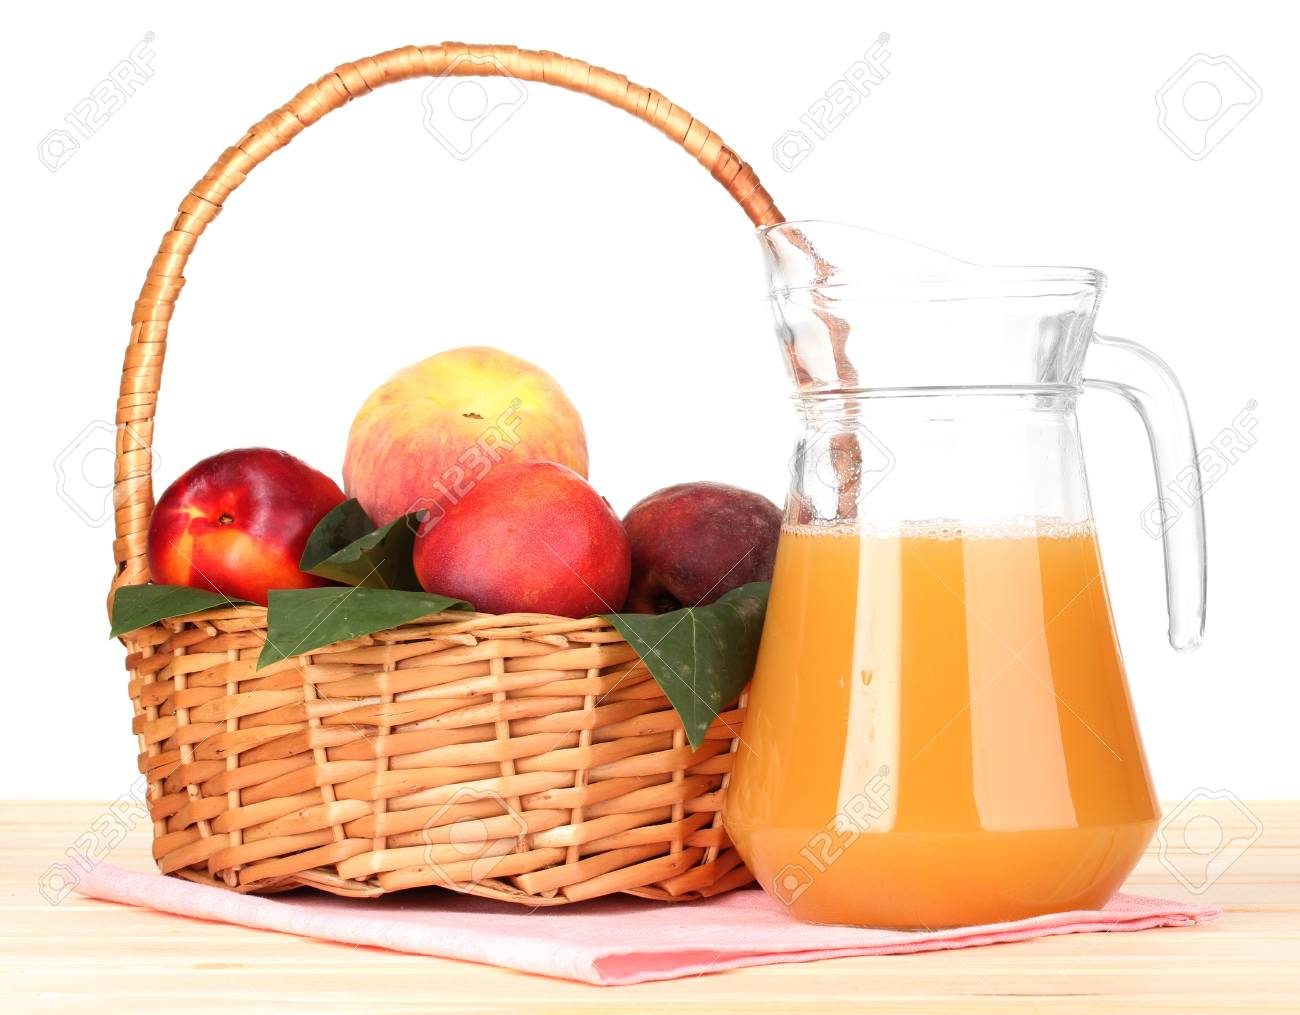 Ripe peaches in basket and juice on wooden table on white background Stock Photo - 15781512